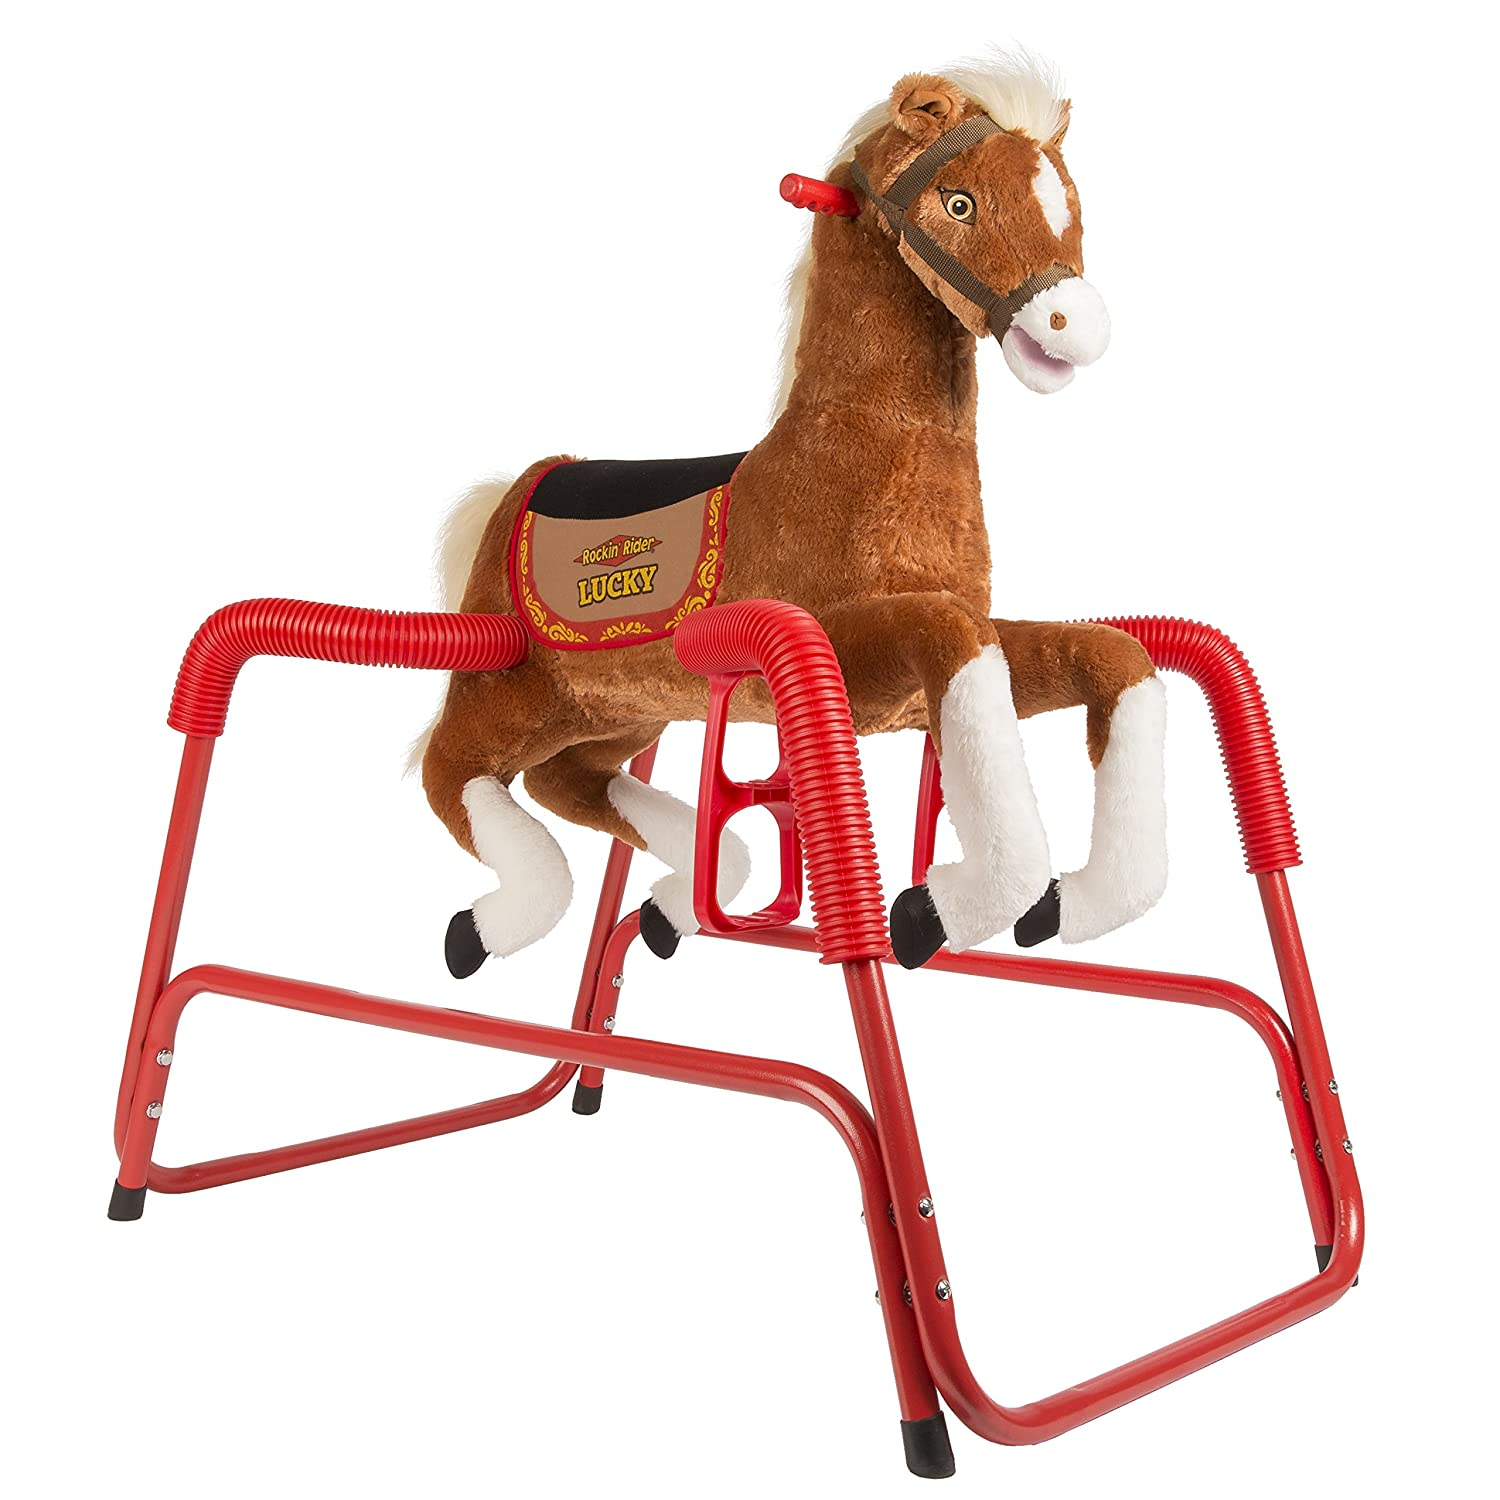 Top 9 Best Rocking Horses Toy Reviews in 2020 9